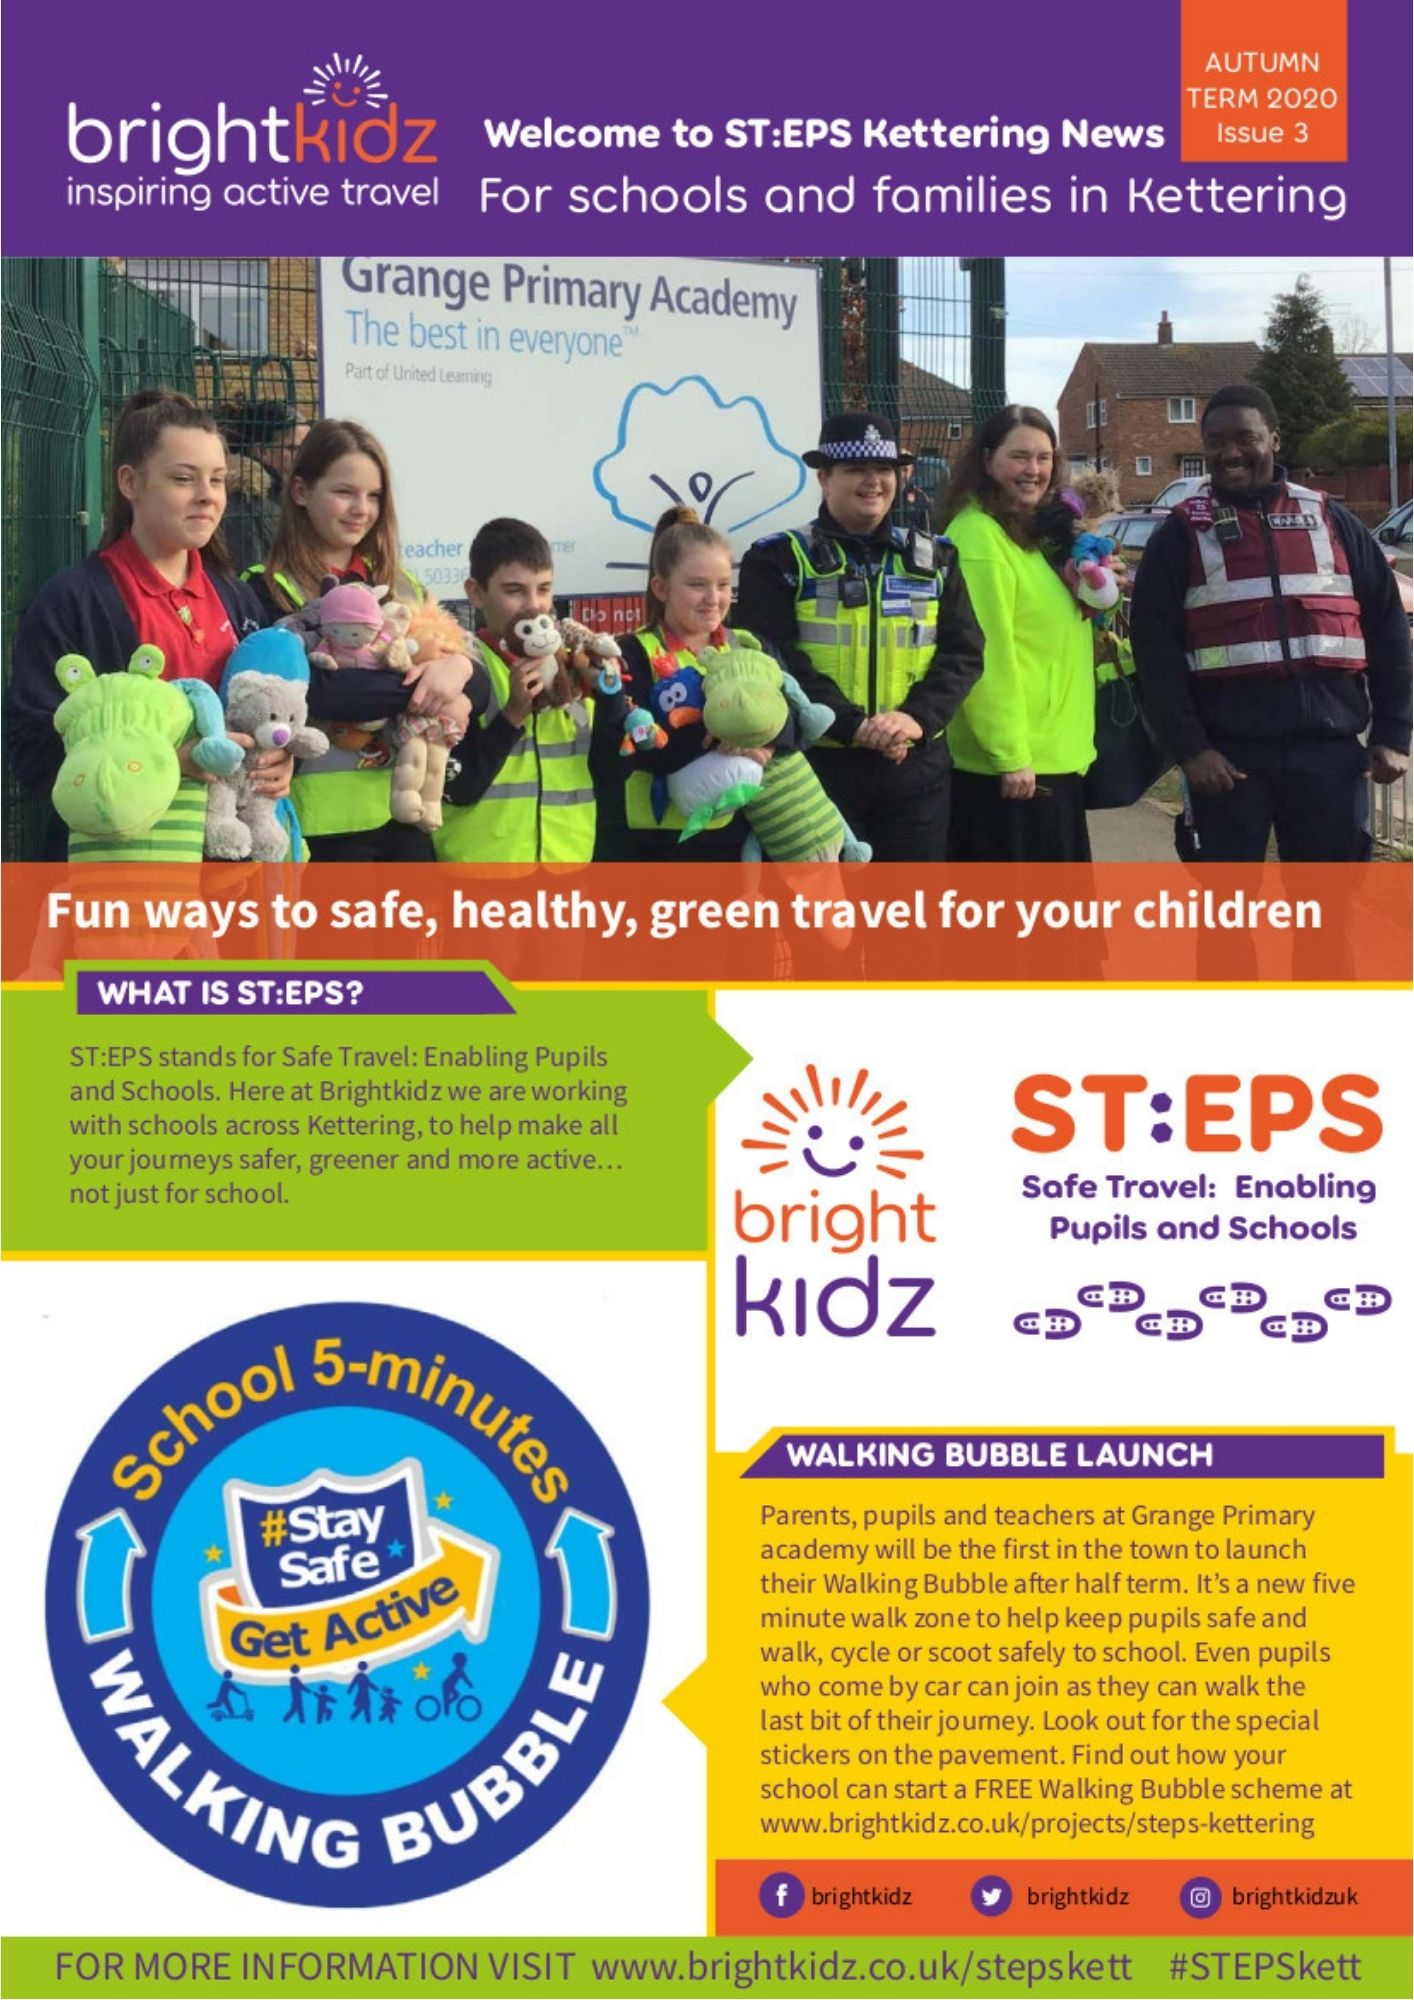 STEPS Kettering page 1 autumn 2020